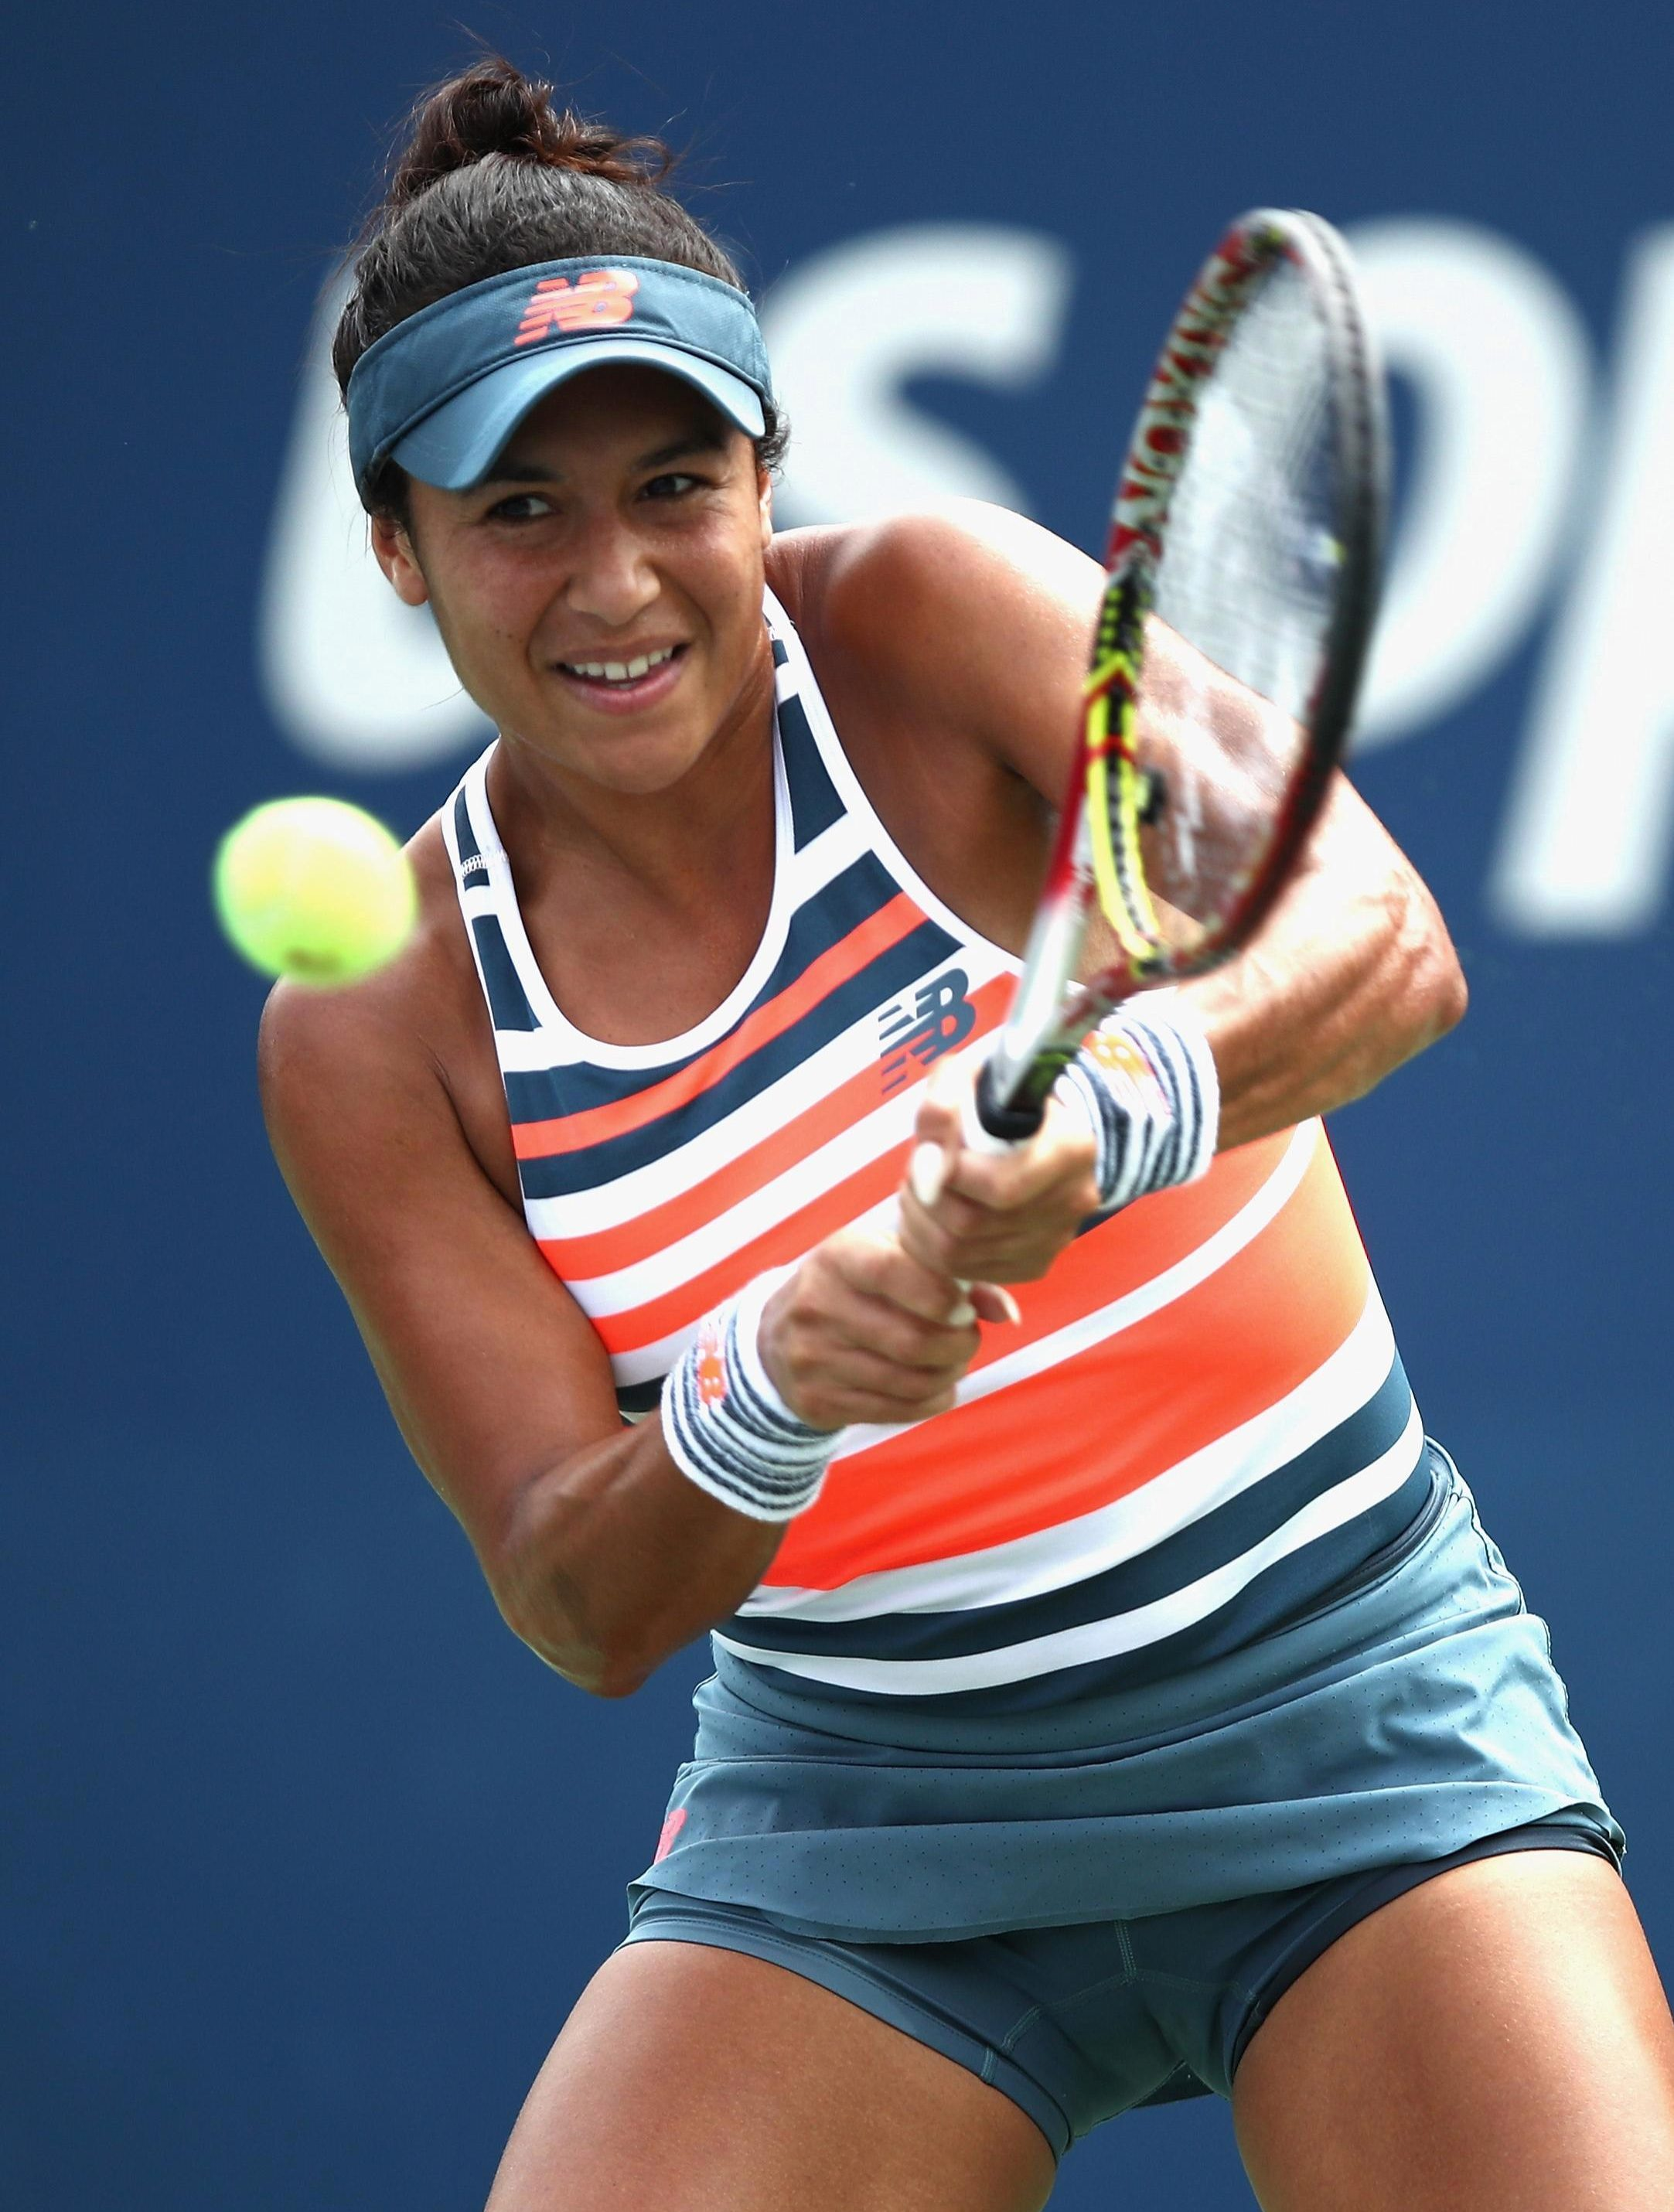 Heather Watson made it a bad day for British Tennis following Edmund out of the US Open first round